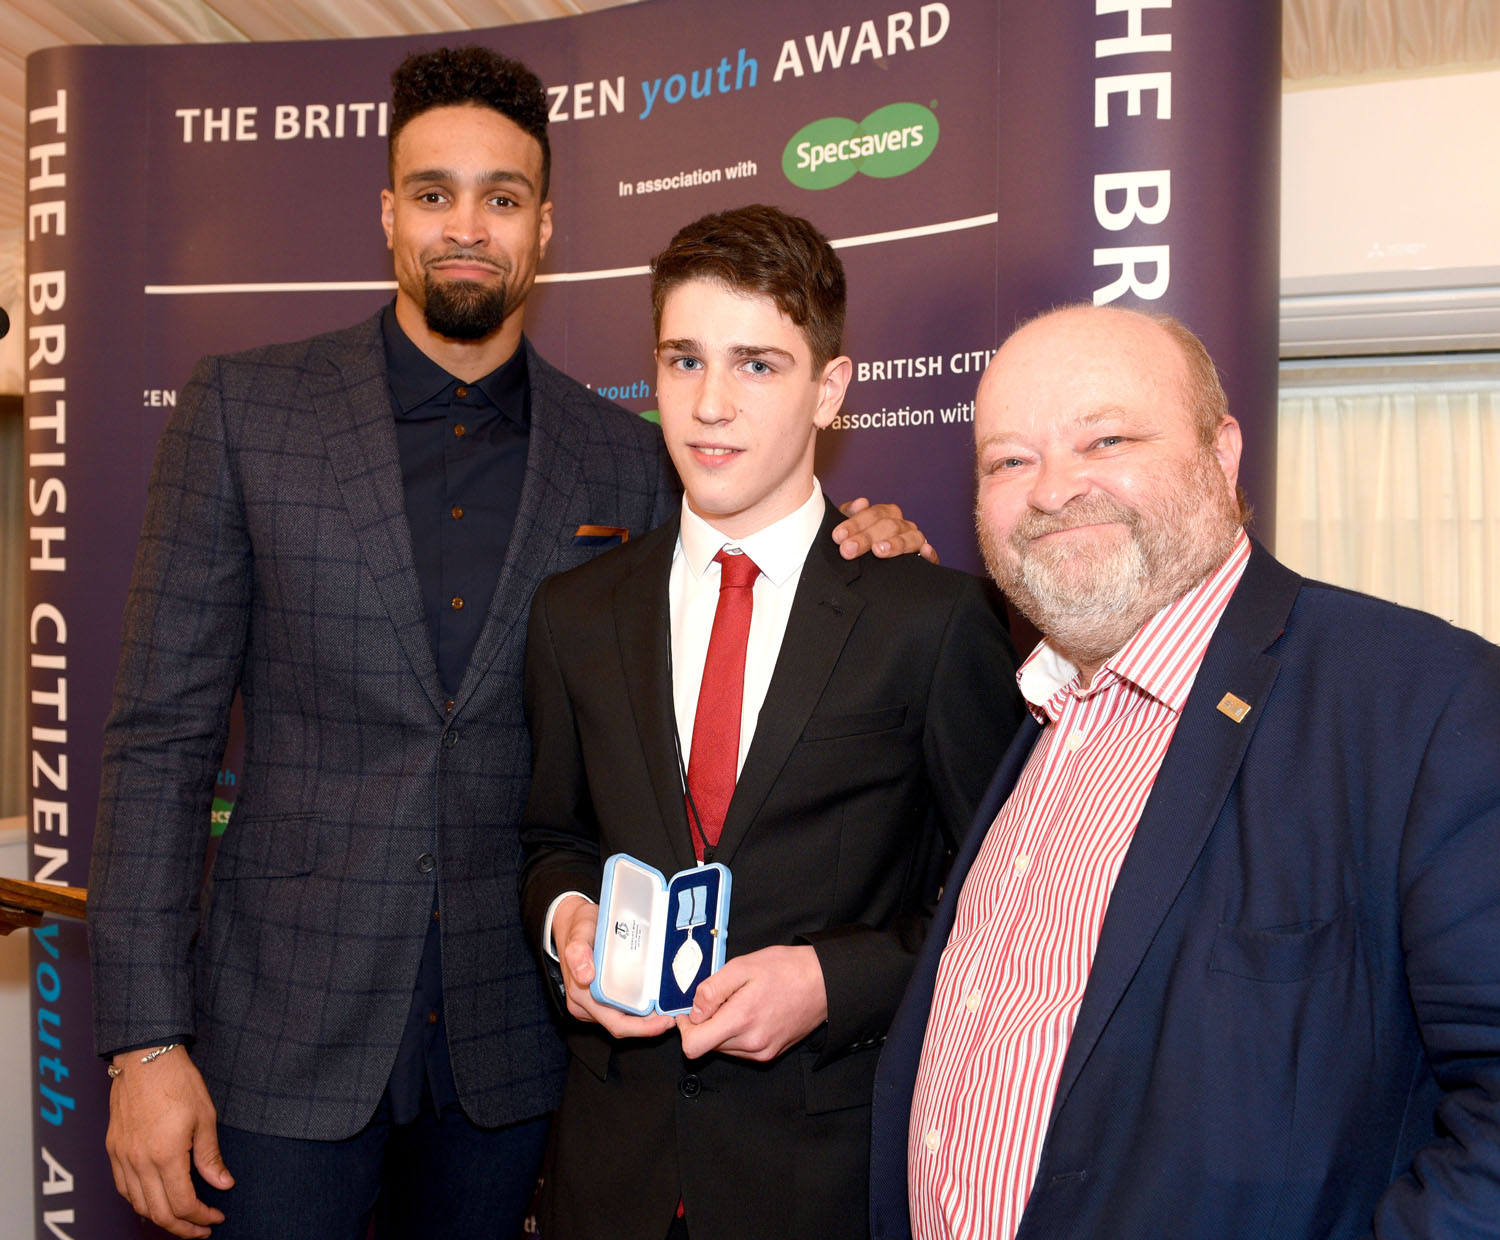 Town Teenager Honoured with British Citizen Youth Award